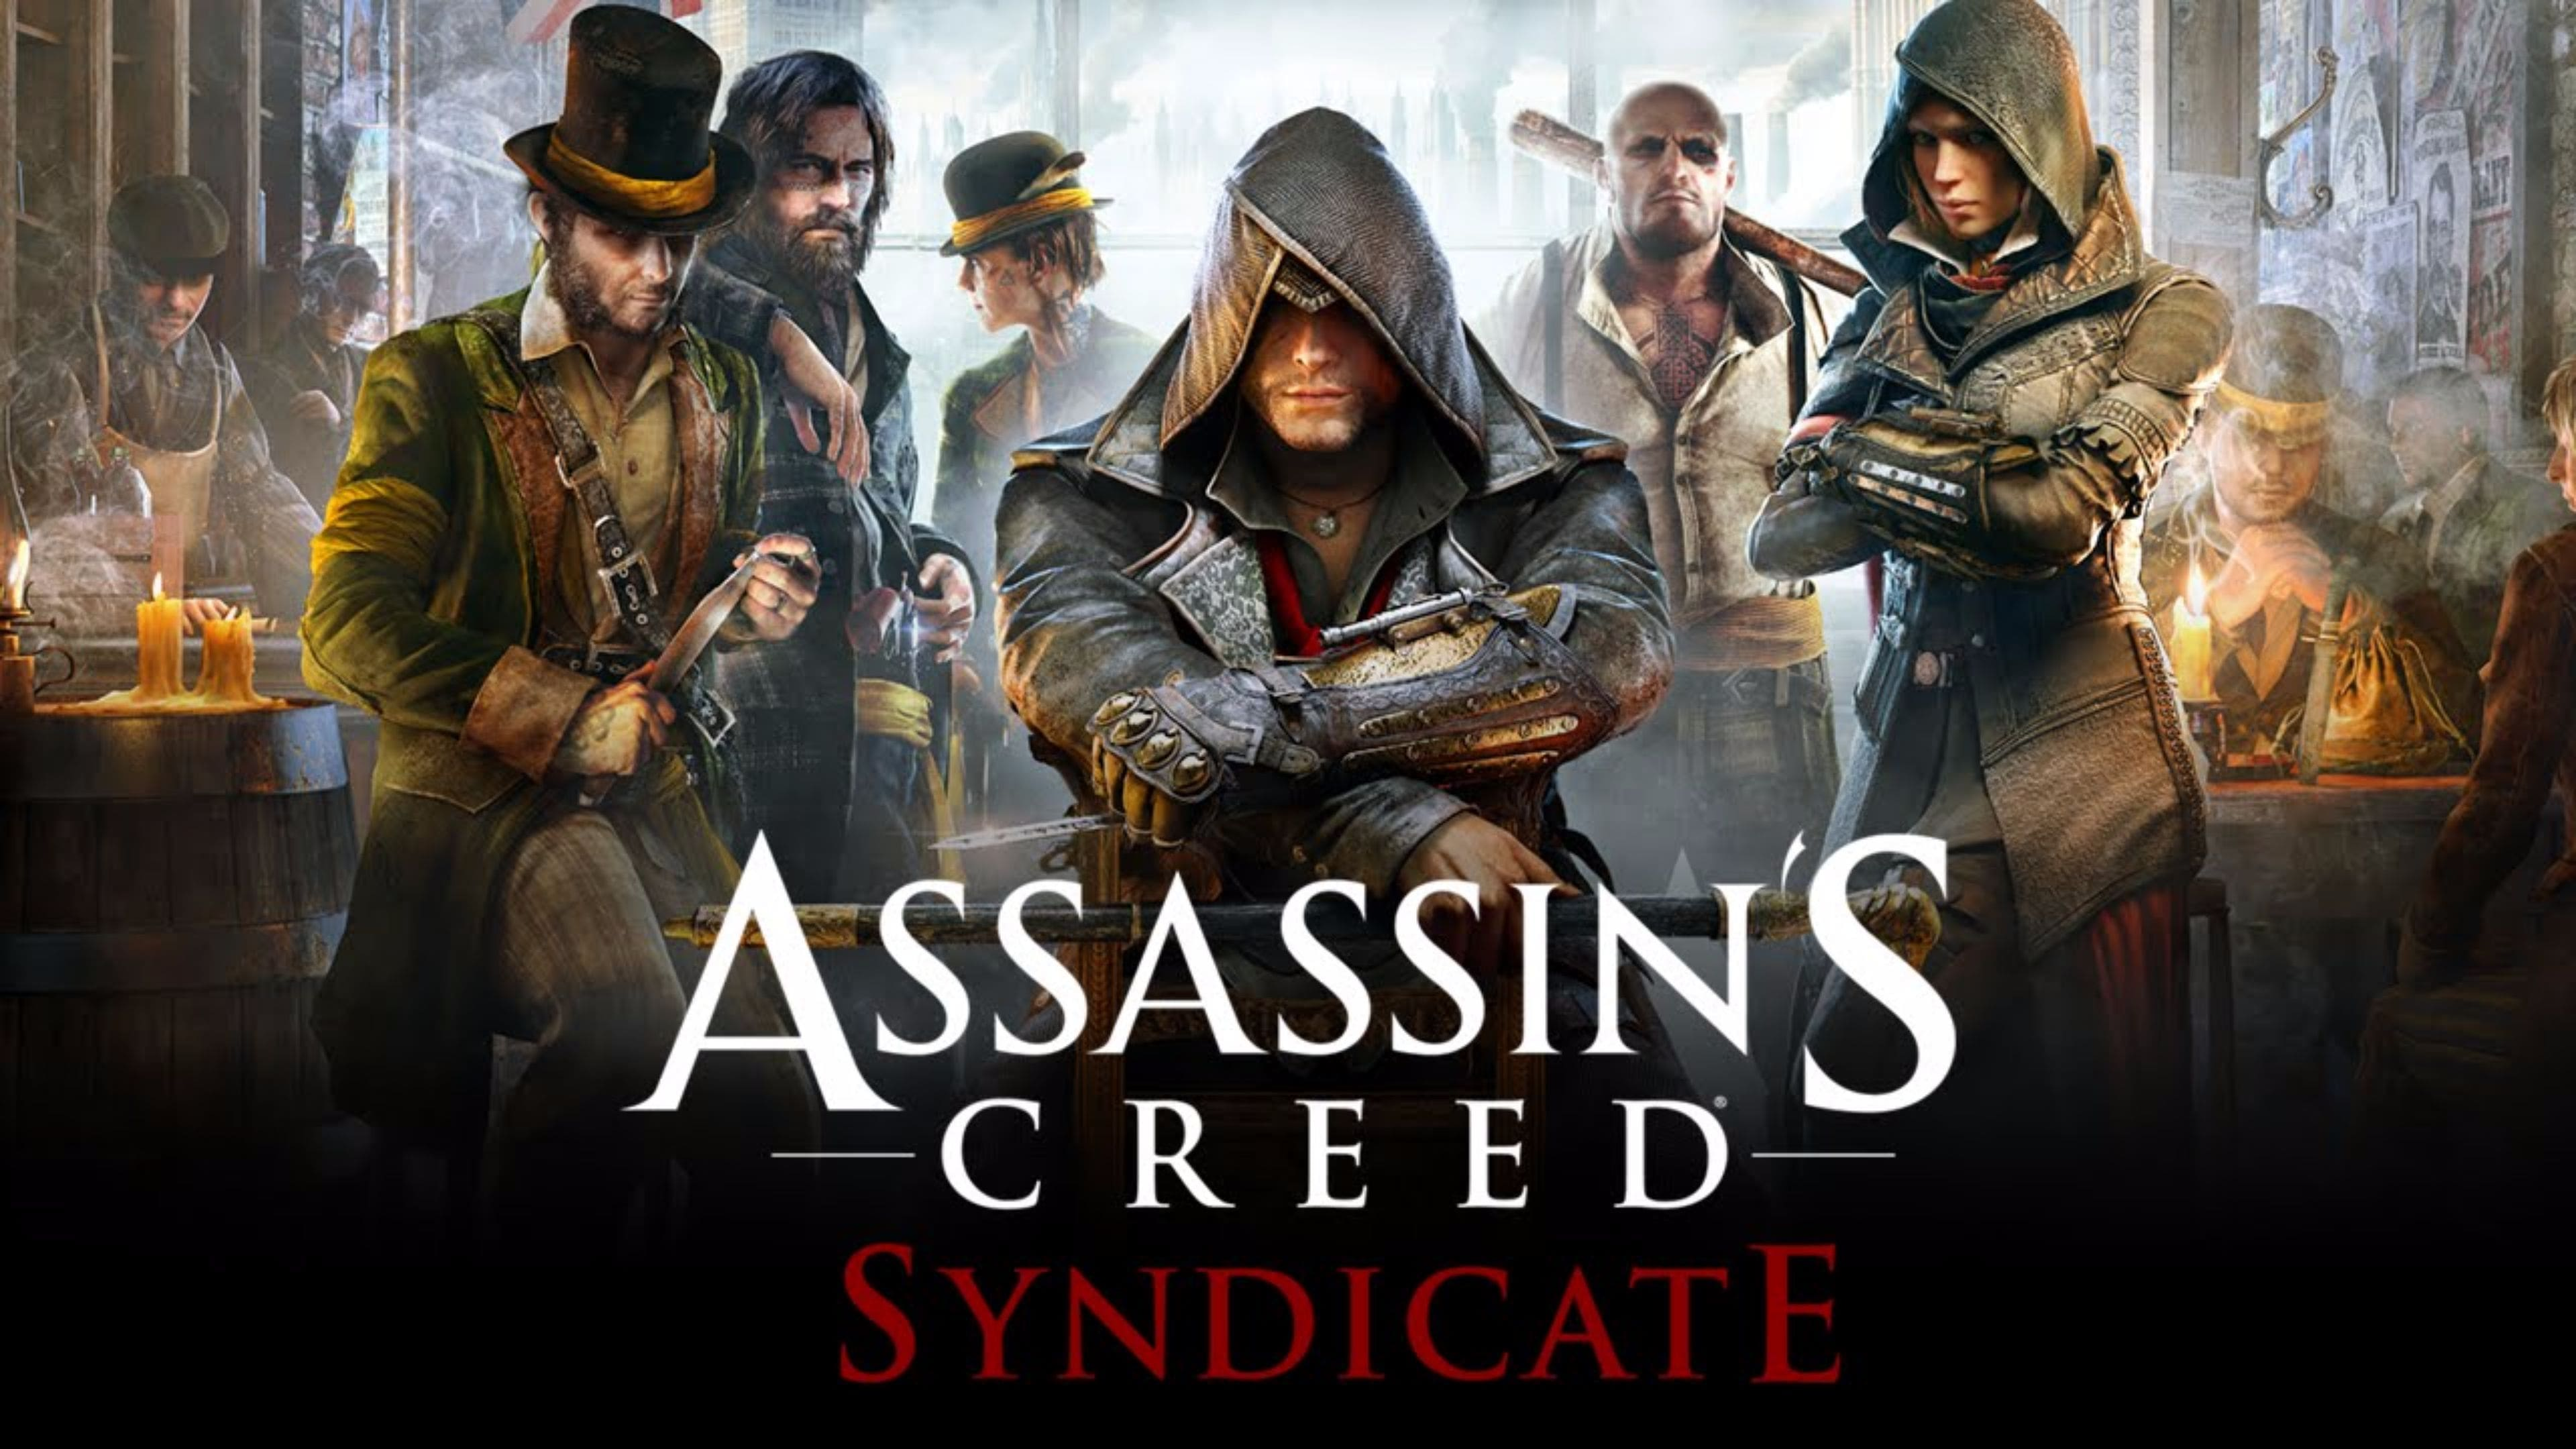 Assassin S Creed Syndicate Hd Wallpapers 7wallpapers Net Images, Photos, Reviews